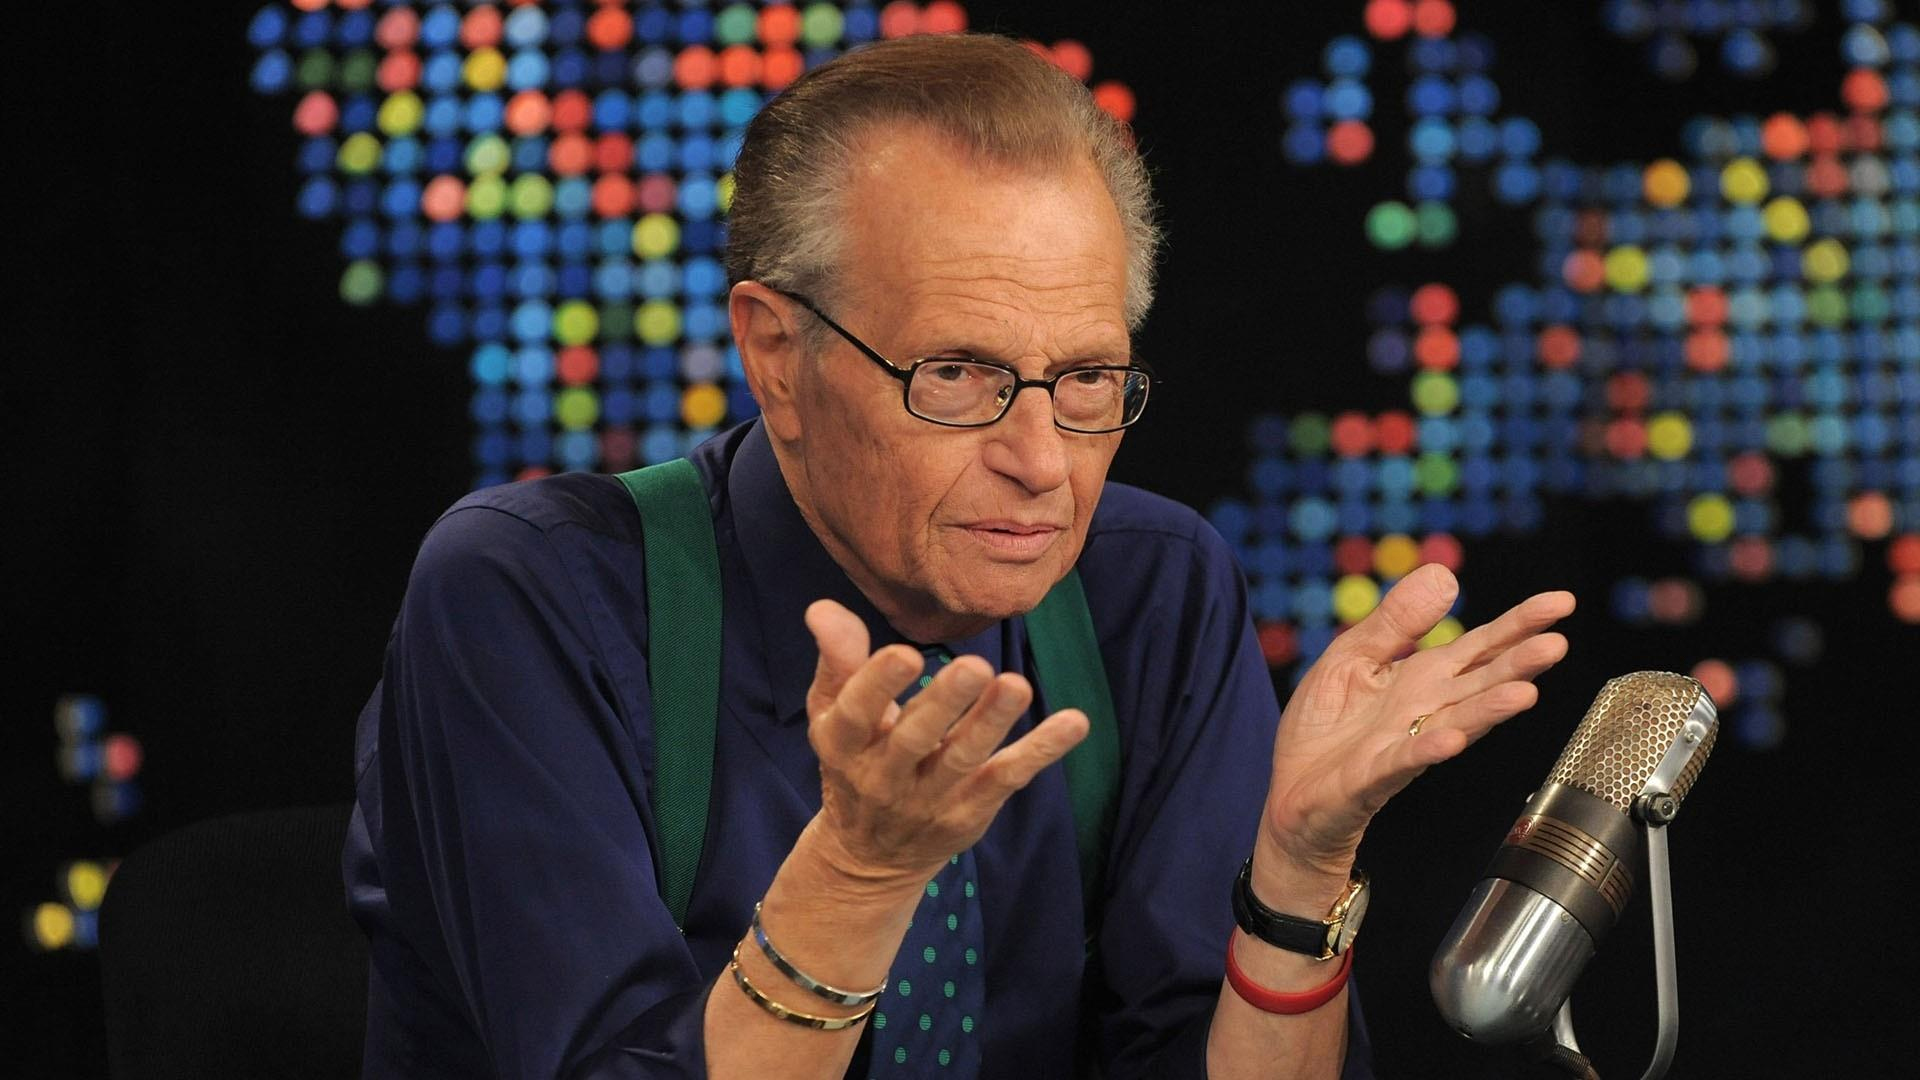 Ismael Cala, Larry King, RedLatinastl, Fallece,